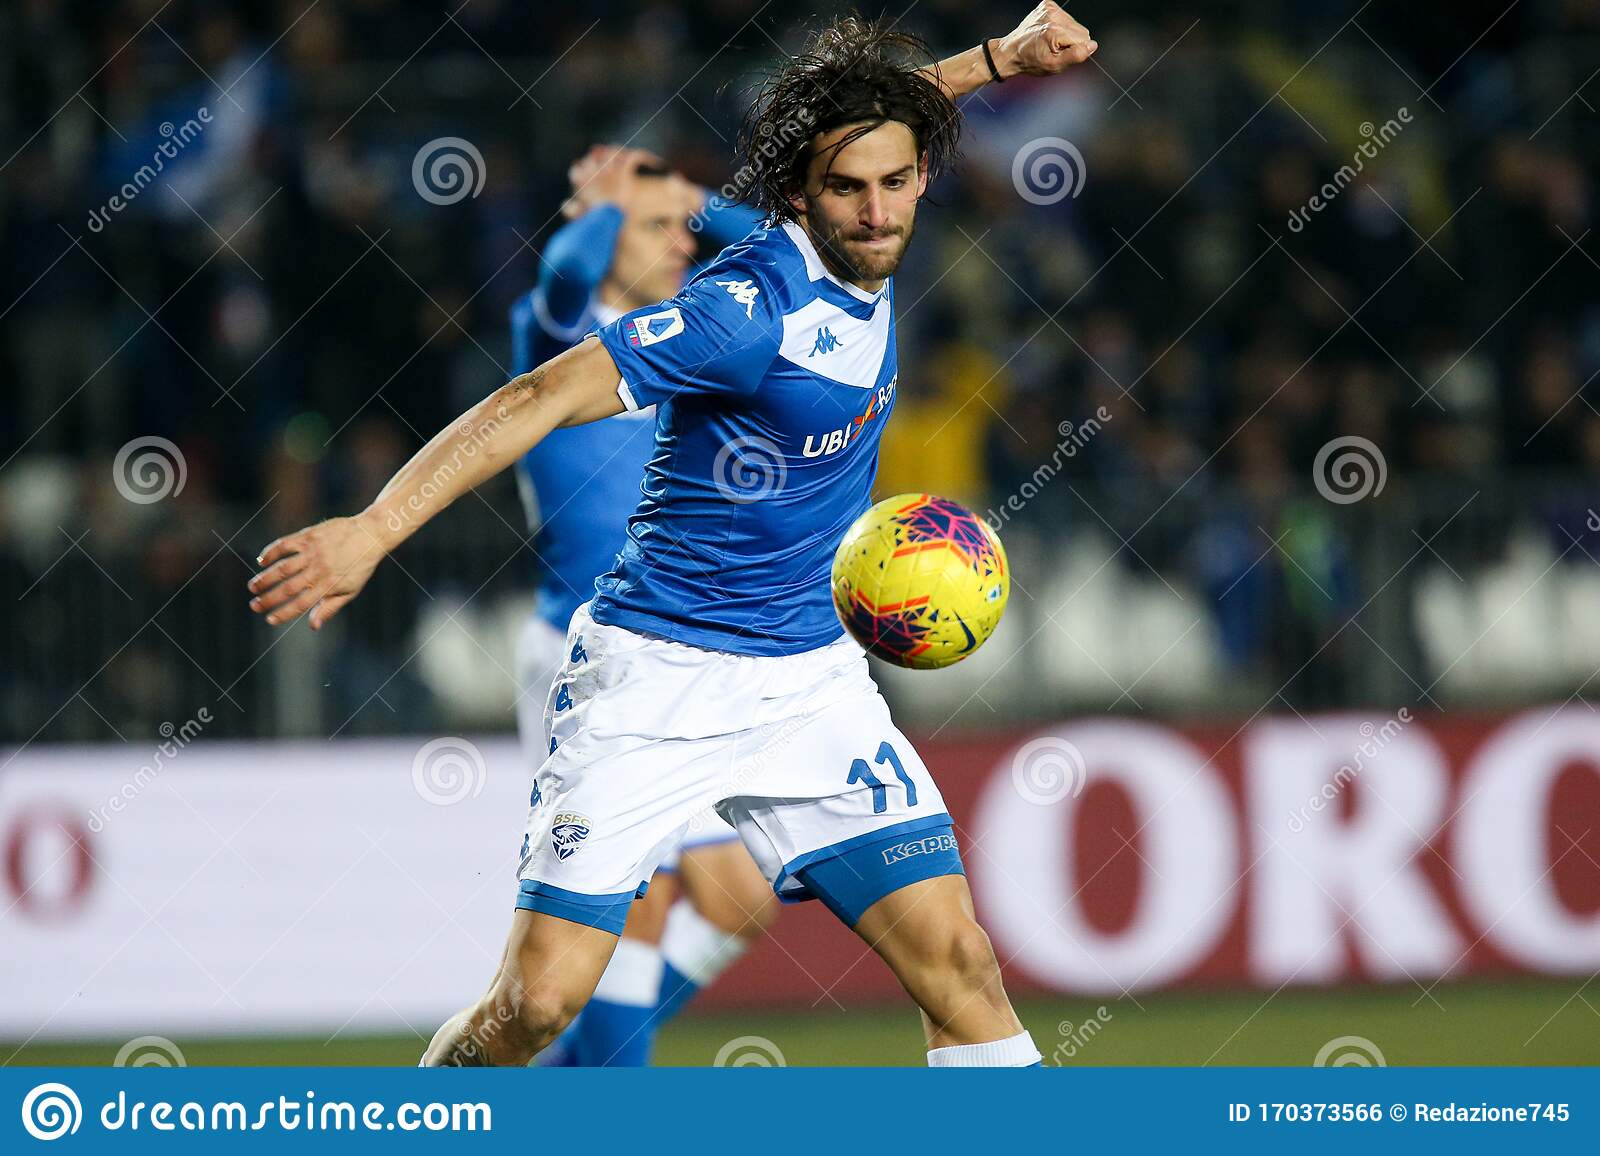 Italian Soccer Serie A Men Championship Brescia Vs Milan Editorial Photo Image Of Italian Player 170373566